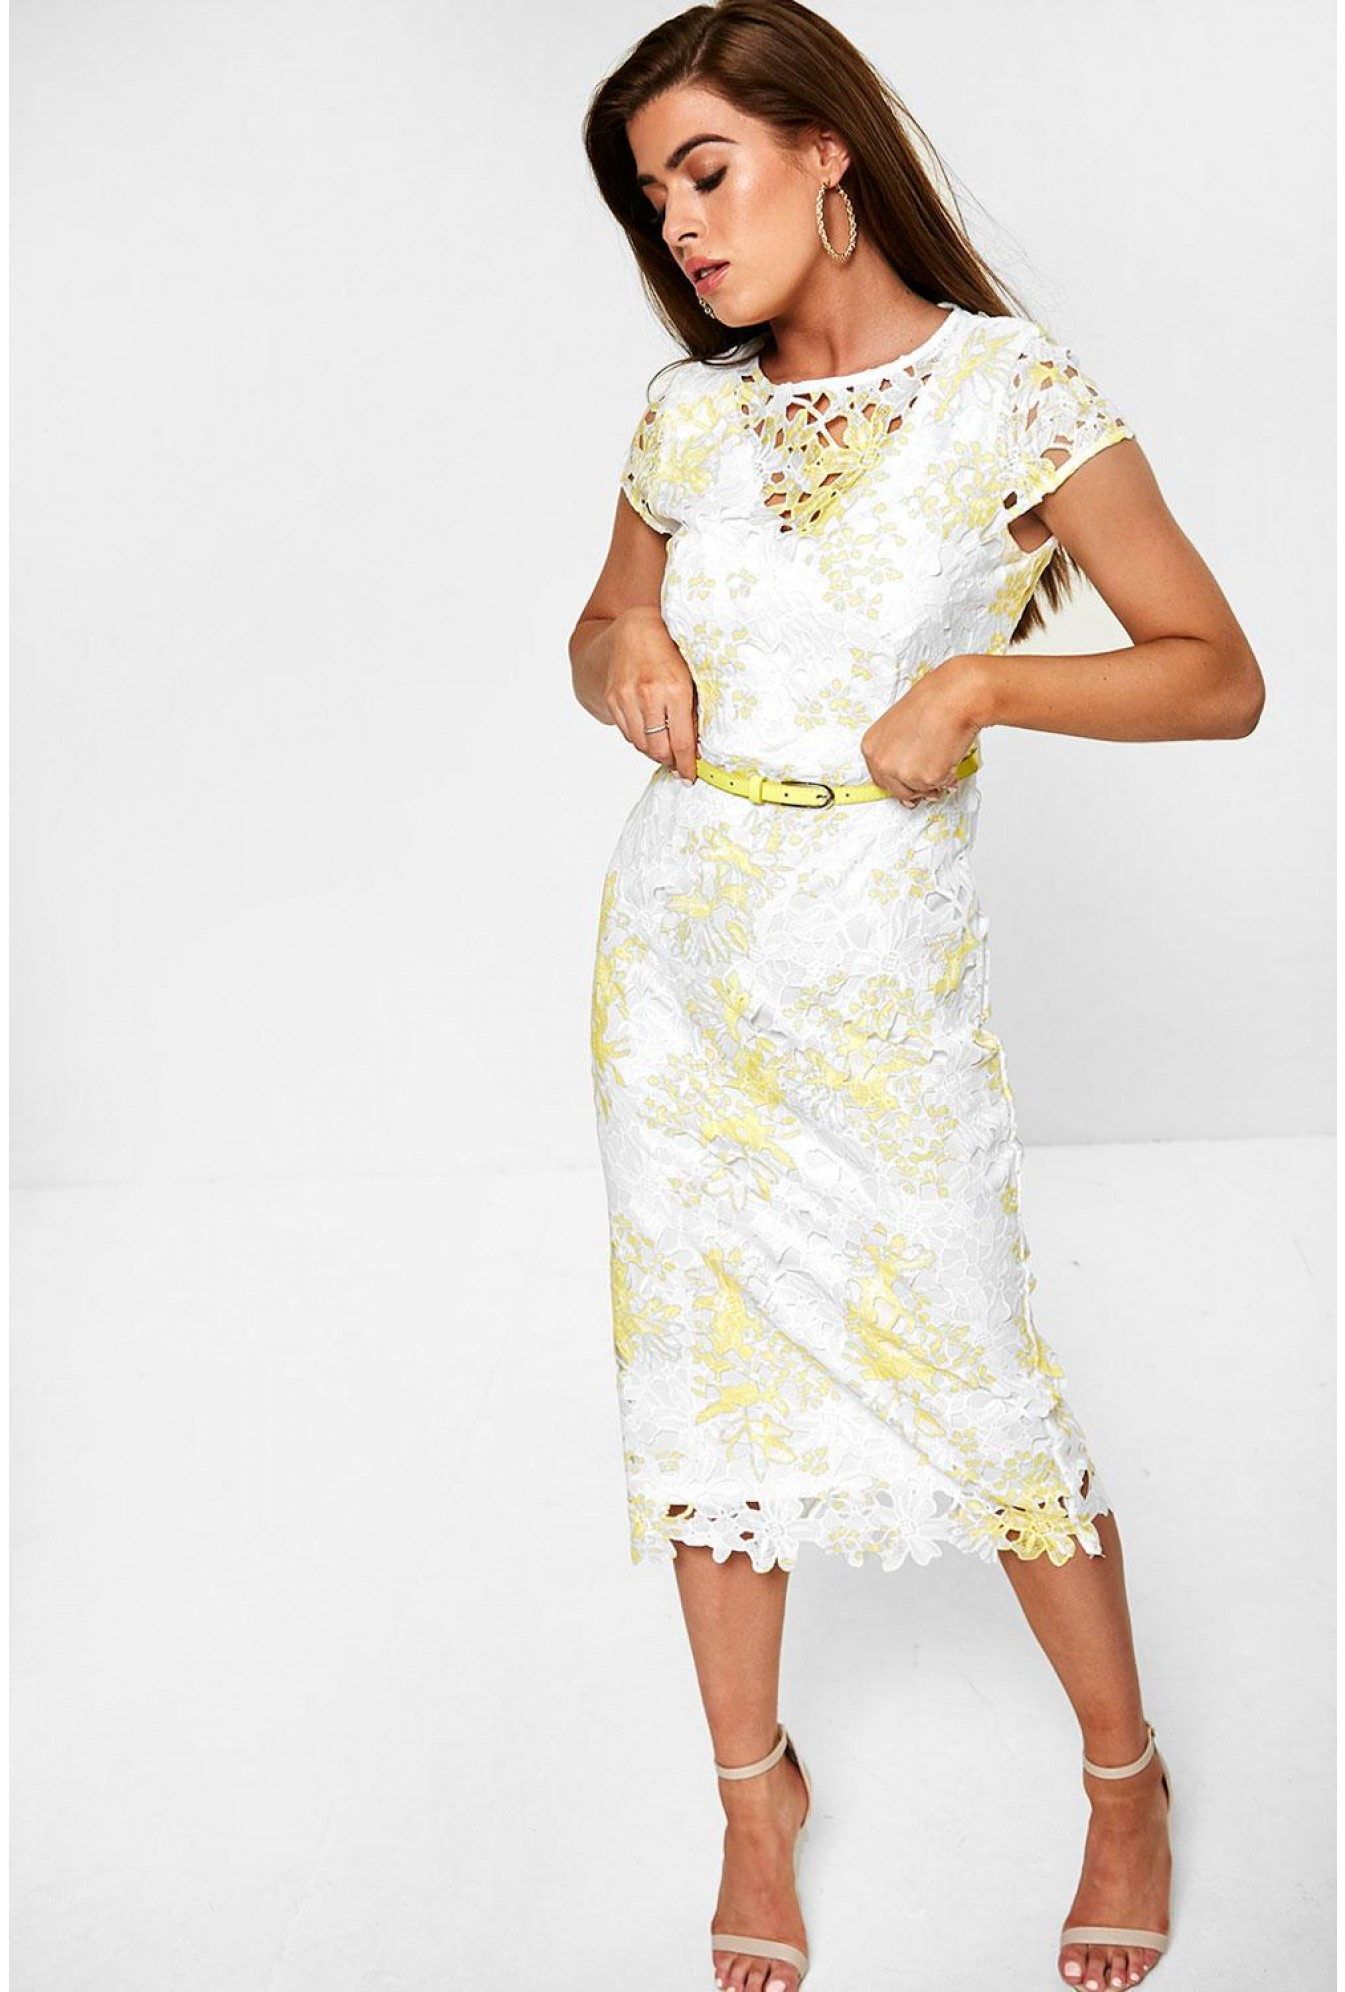 bd9099d96ba8 Marc Angelo Crochet Midi Dress in White and Yellow | iCLOTHING